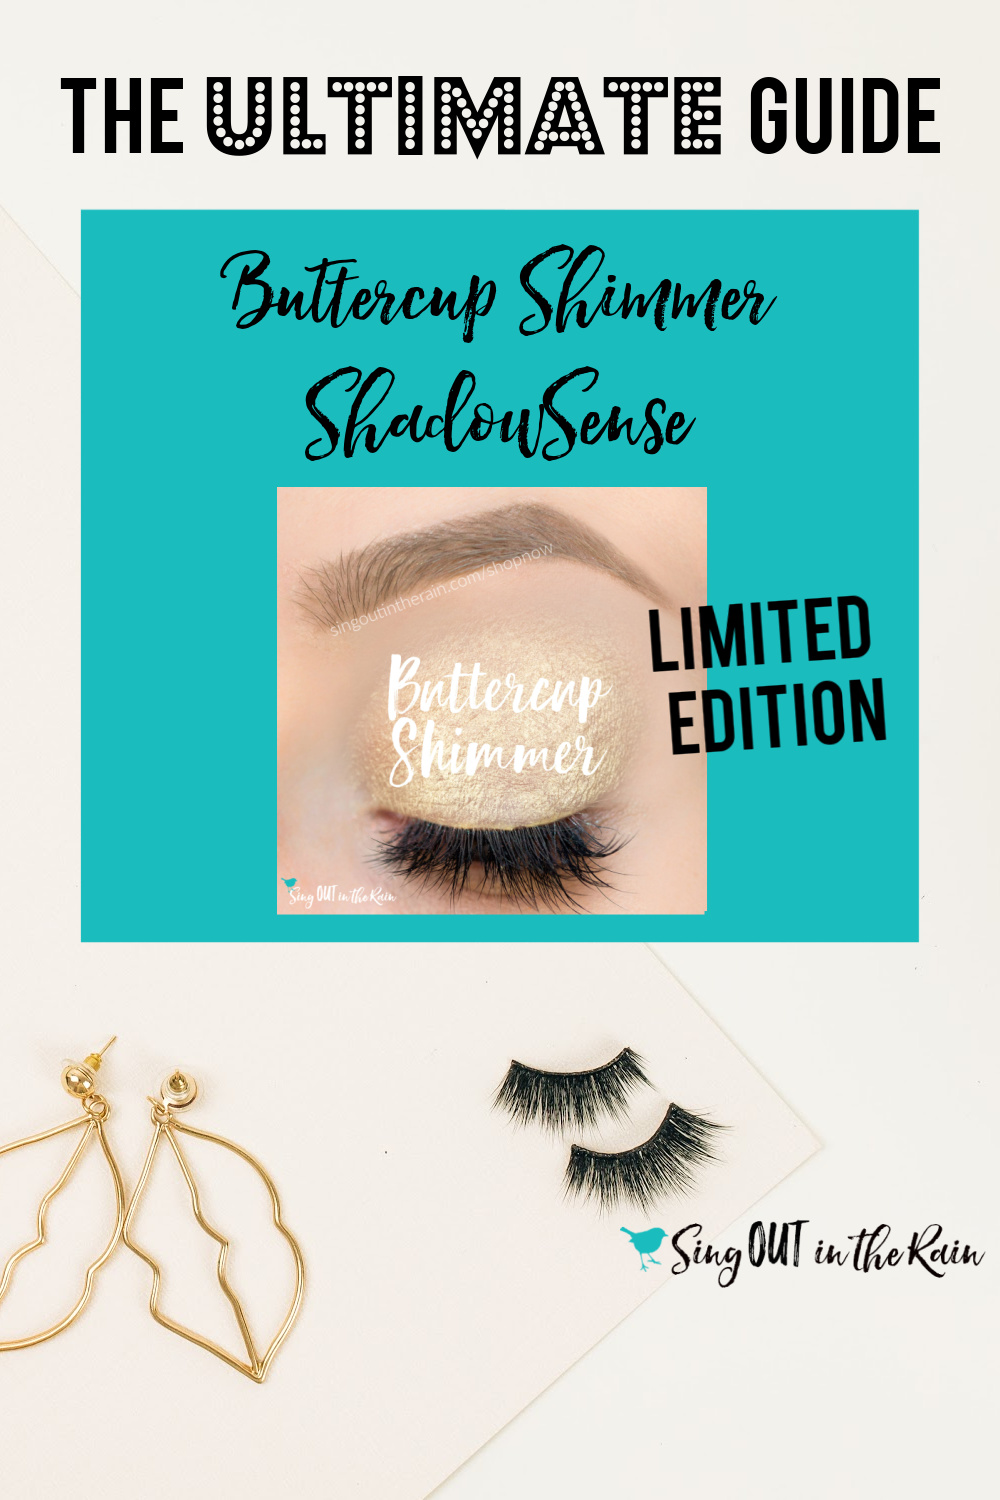 The Ultimate Guide to Buttercup Shimmer ShadowSense